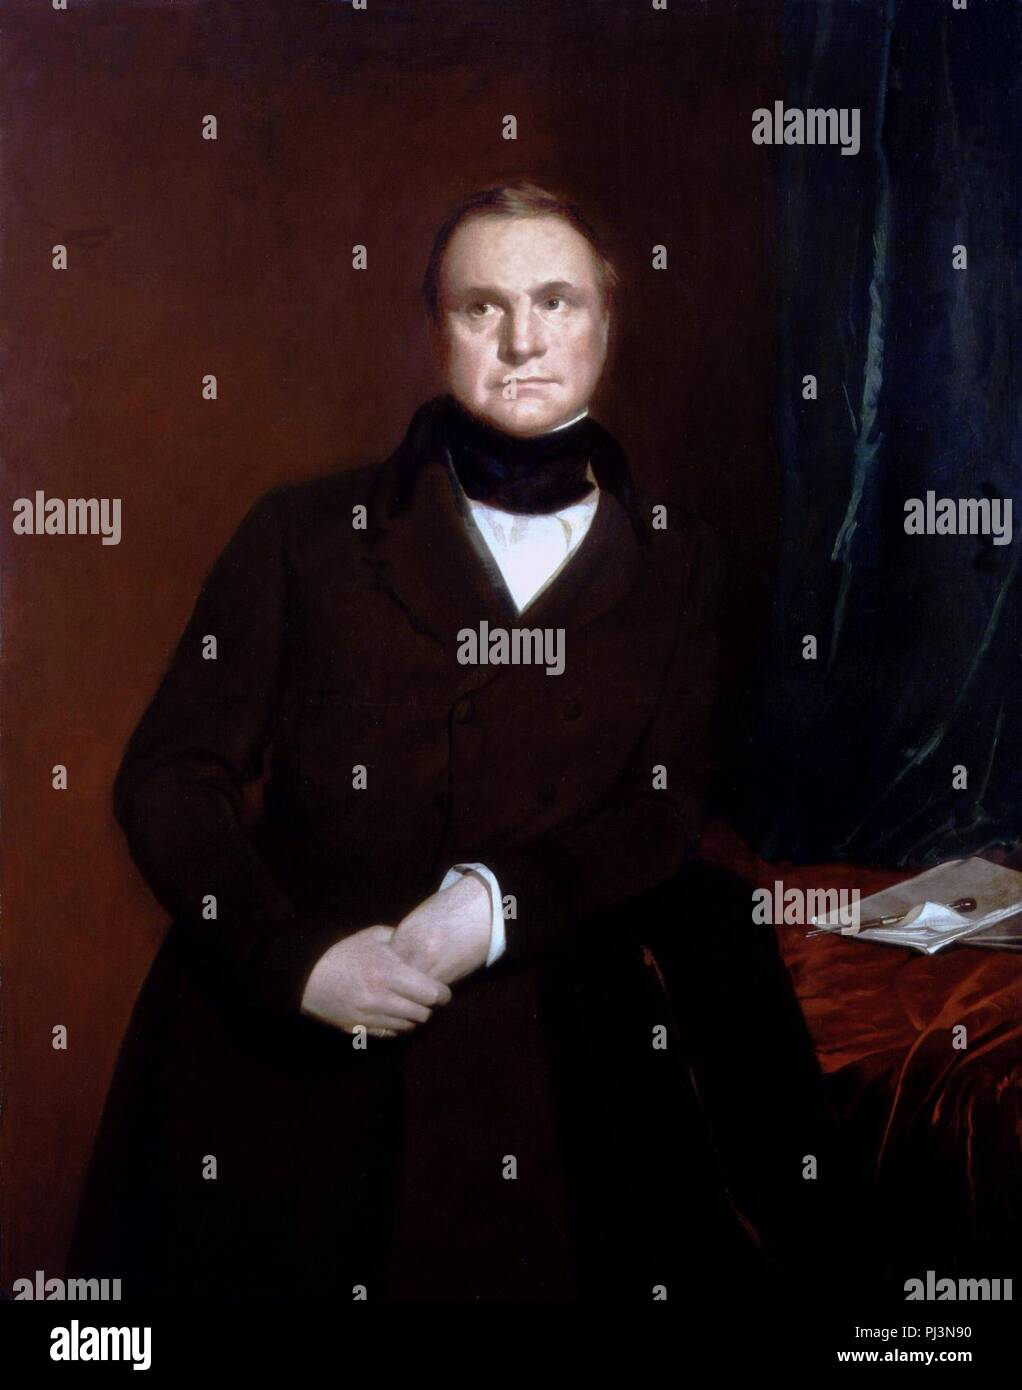 Charles Babbage by Samuel Laurence. - Stock Image